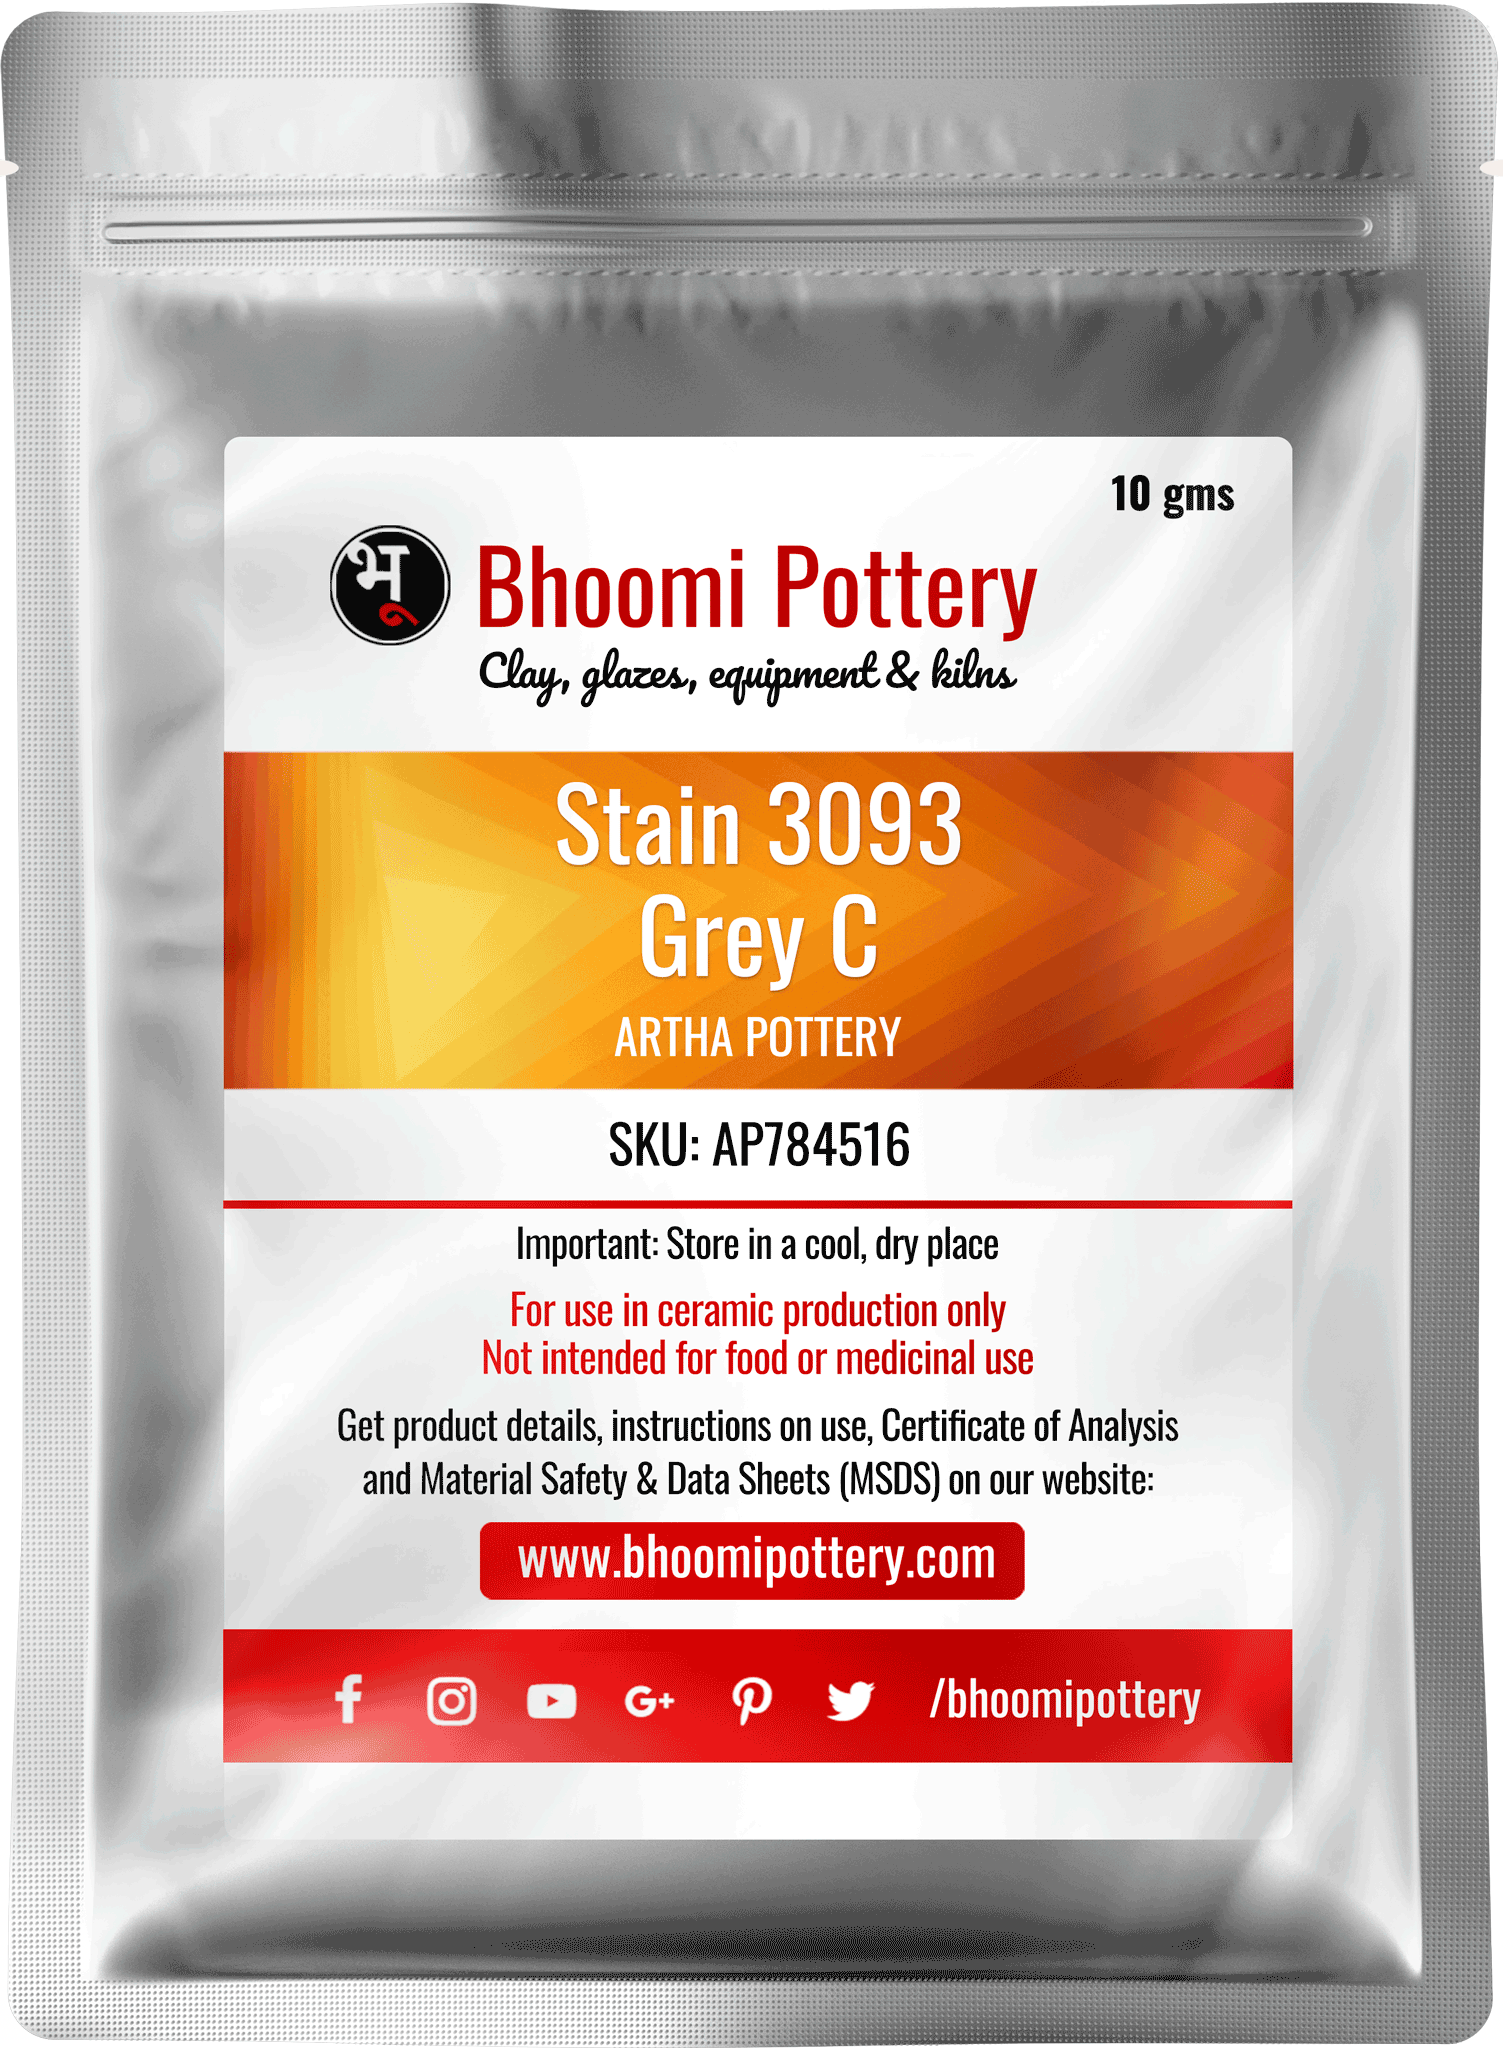 Artha Pottery Stain 3093 Grey C 100 gms for sale in India - Bhoomi Pottery